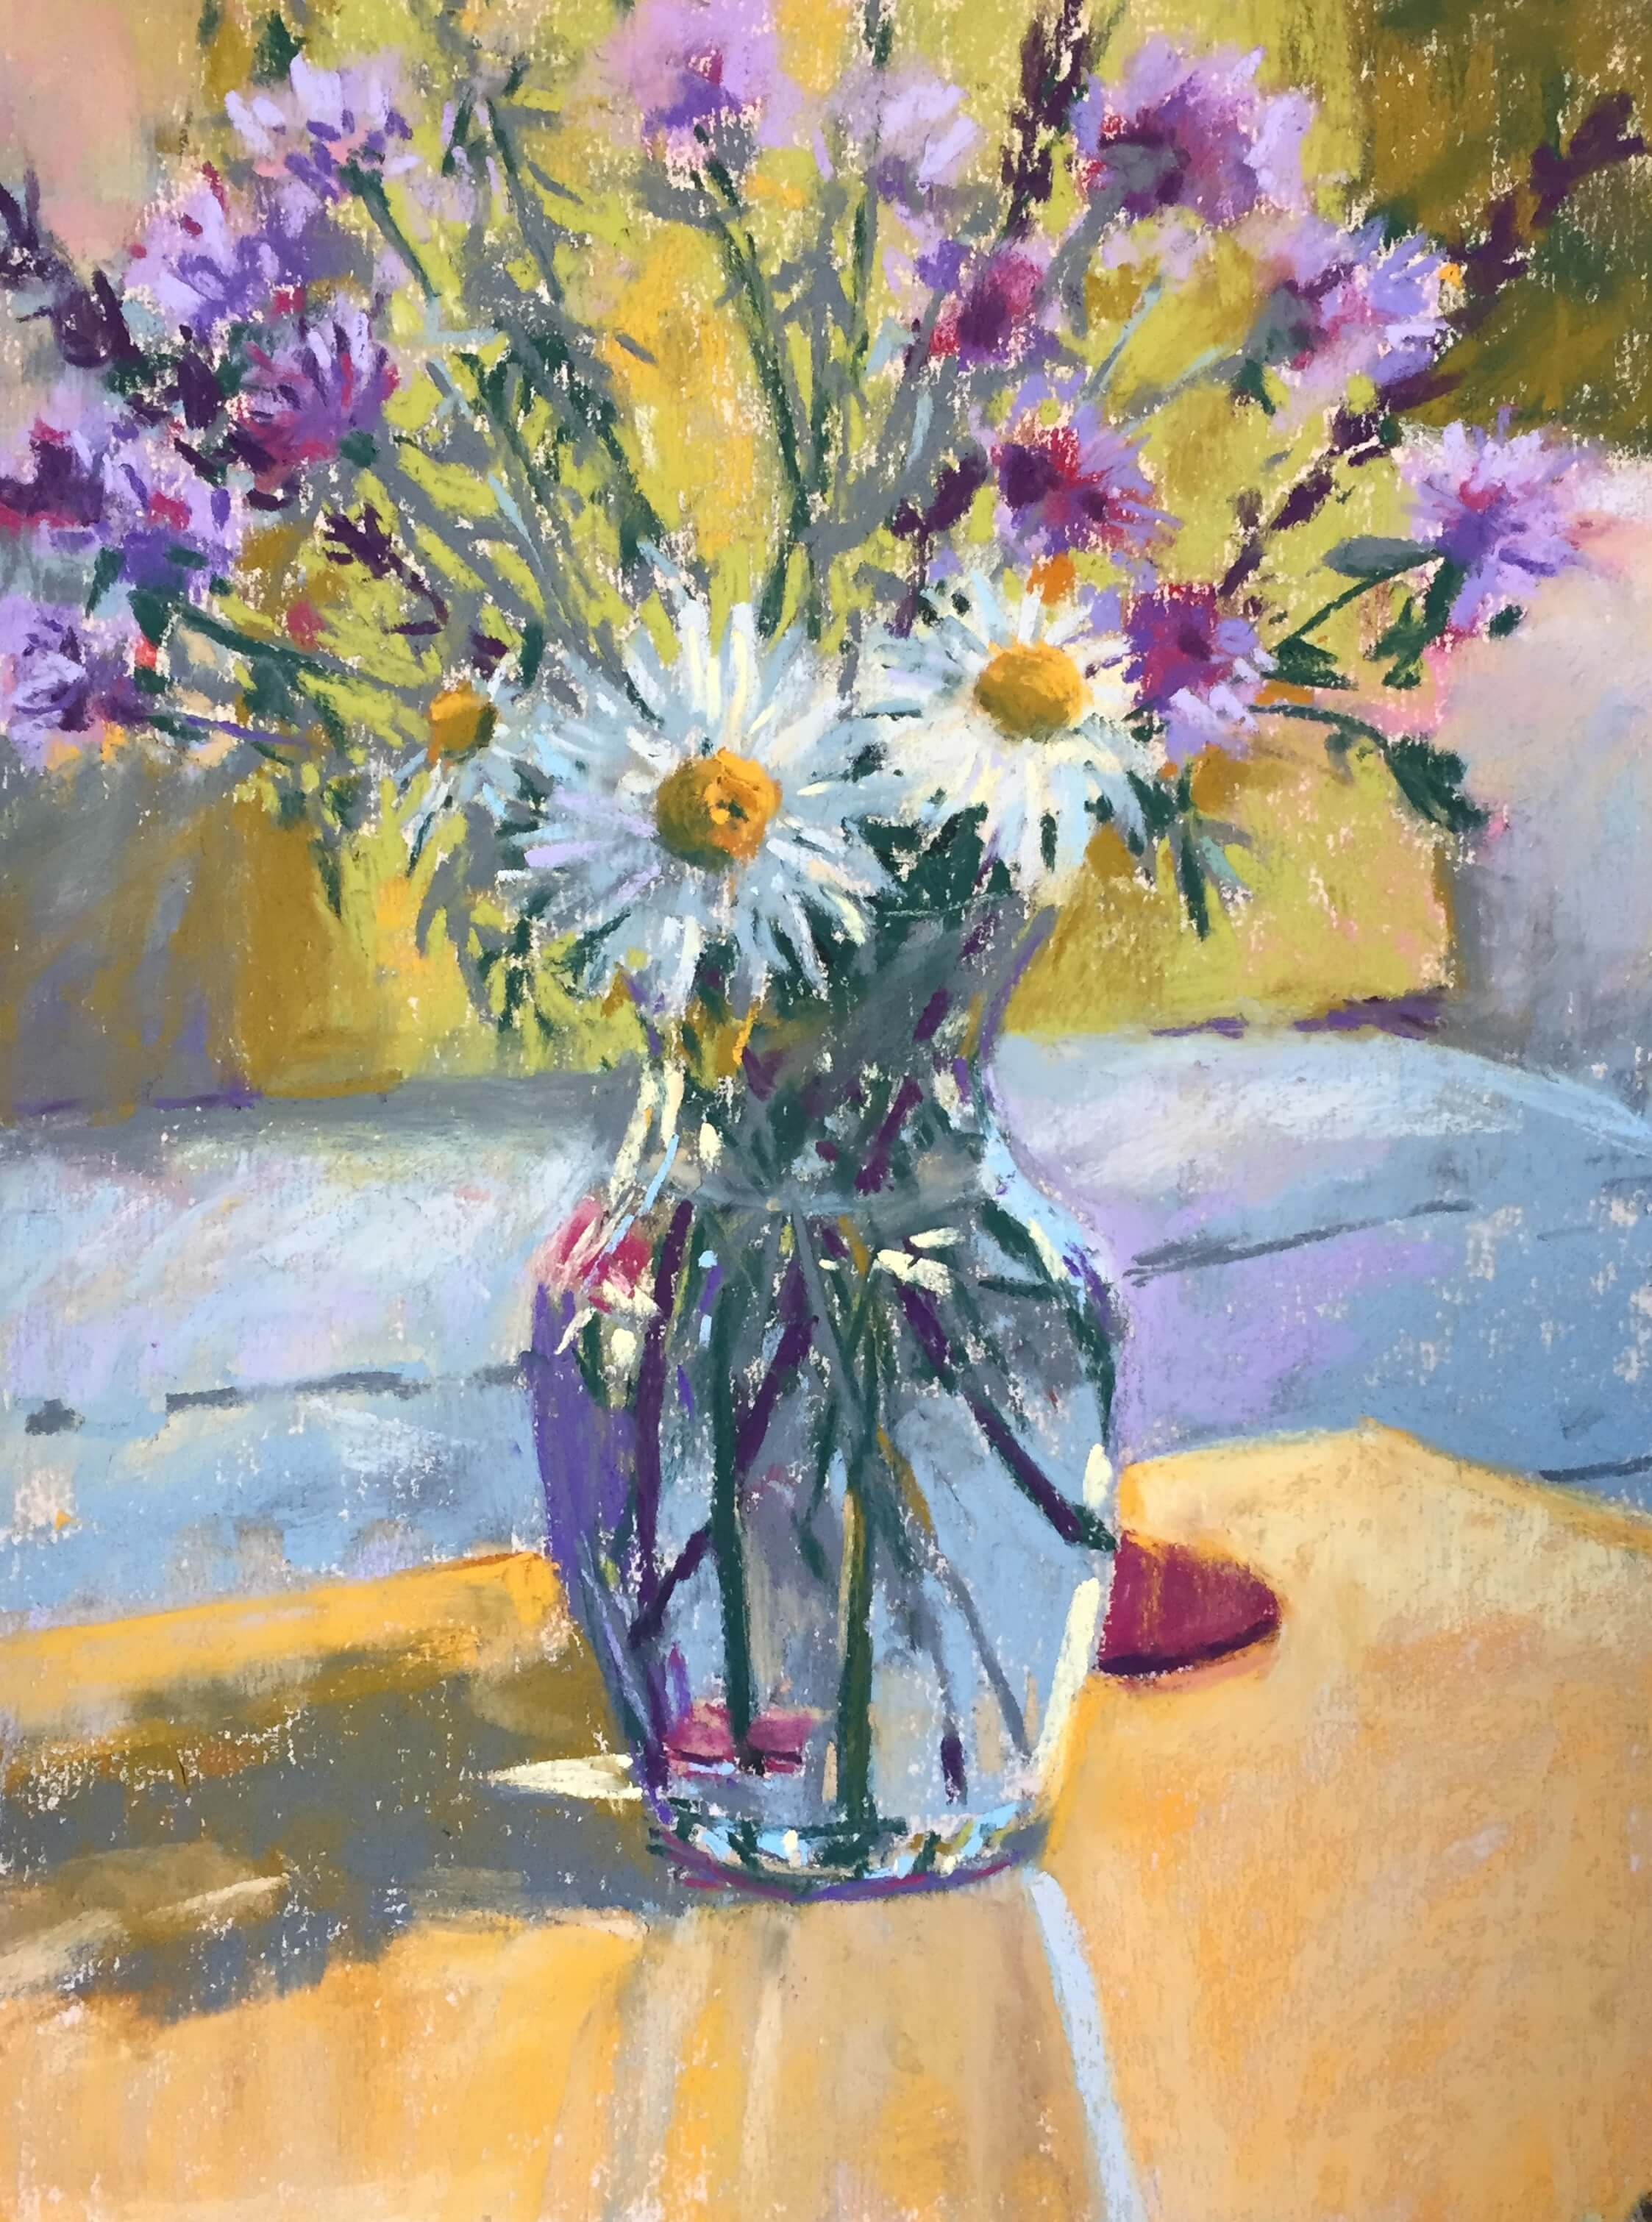 """Gail Sibley, """"Summer Flowers in a Vase,"""" Unison pastels on UART 400 grade paper, 12 x 9 in. Final detailing particularly on flowers, and darkened area left of the pillow."""